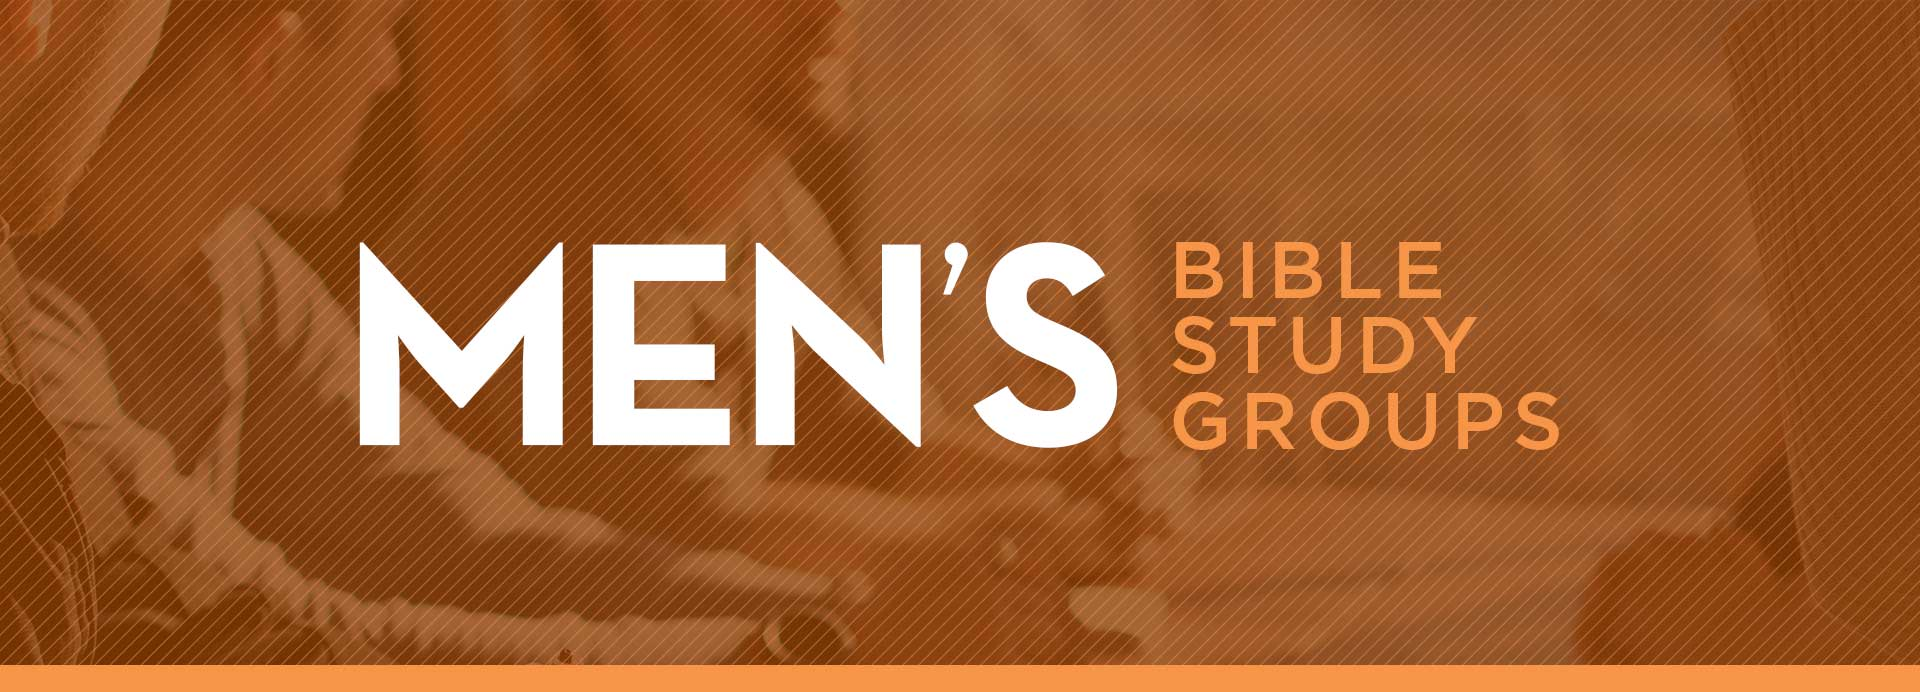 Men's-Bible-Study-Groups_1920x692.jpg